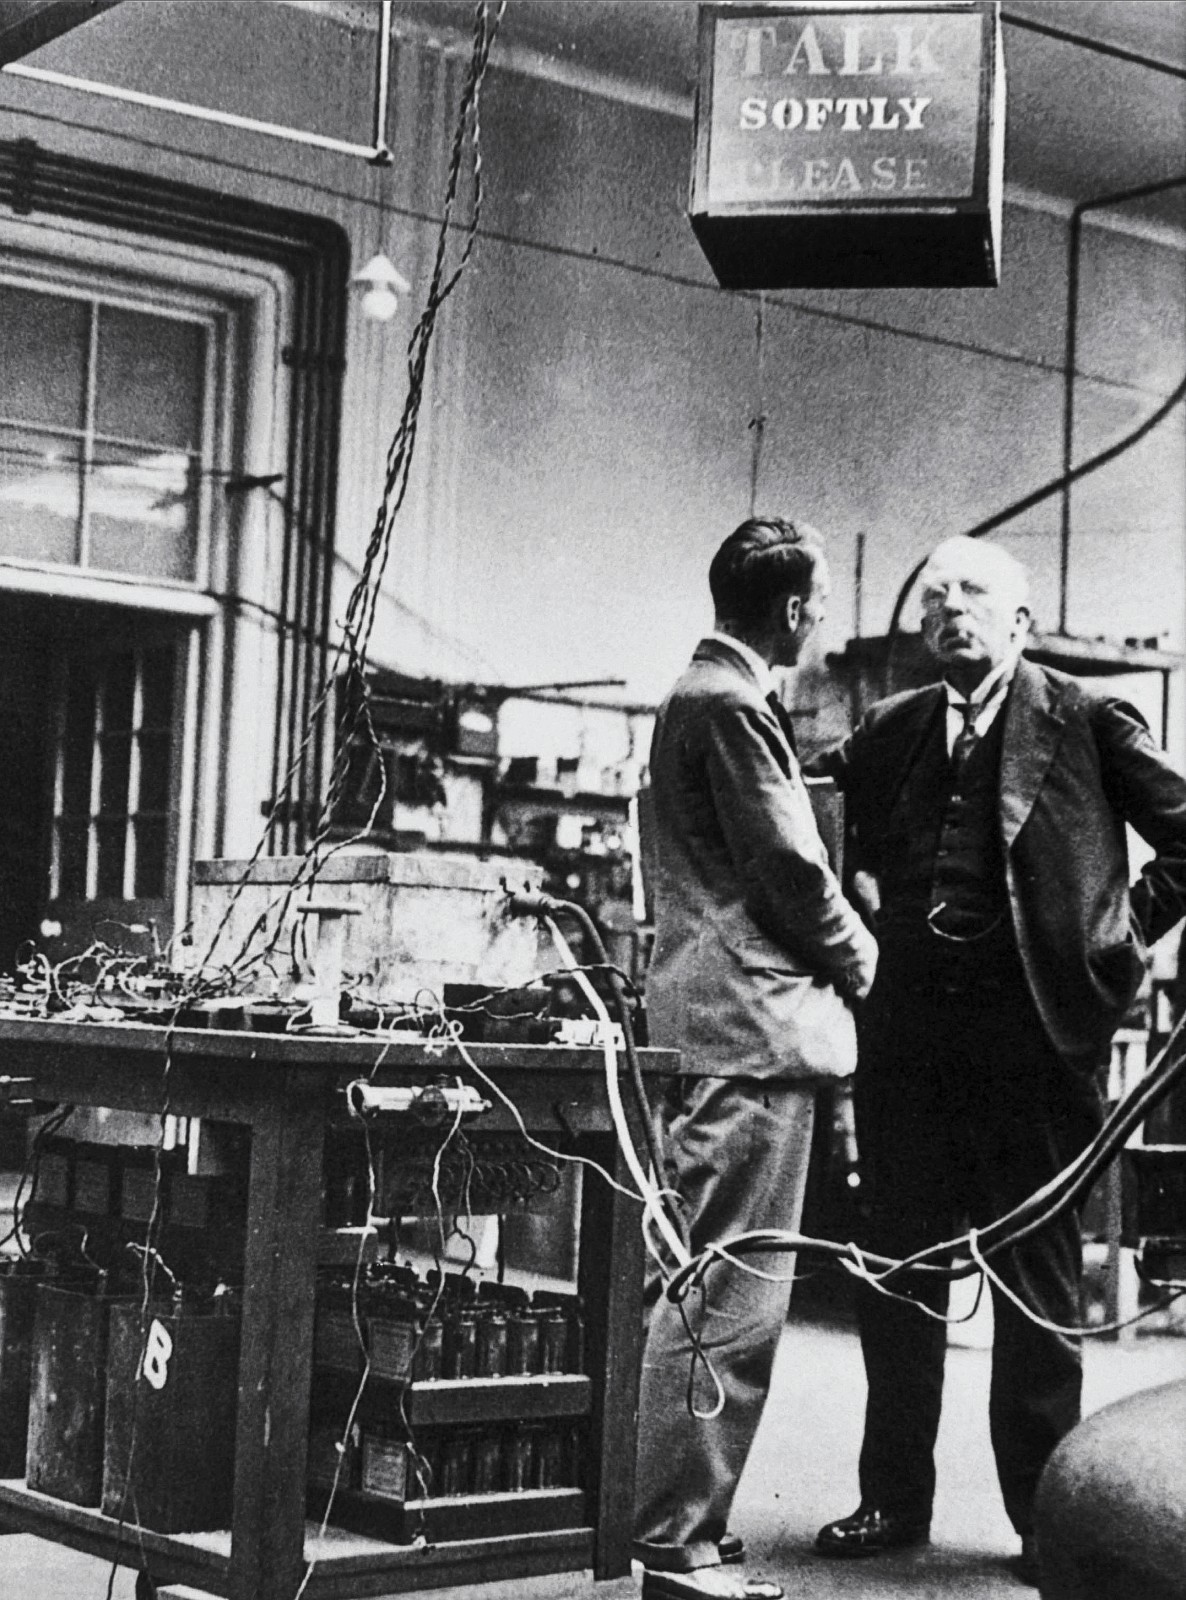 essay on rutherfords lab M l oliphant, p harteck, and ernest rutherford: 1934 note and more detailed paper from the rutherford lab describe fusion ('transmutation') of deuterium (at chemteam site) wilhelm friedrich ostwald on dilution law (1888, at chemteam site.